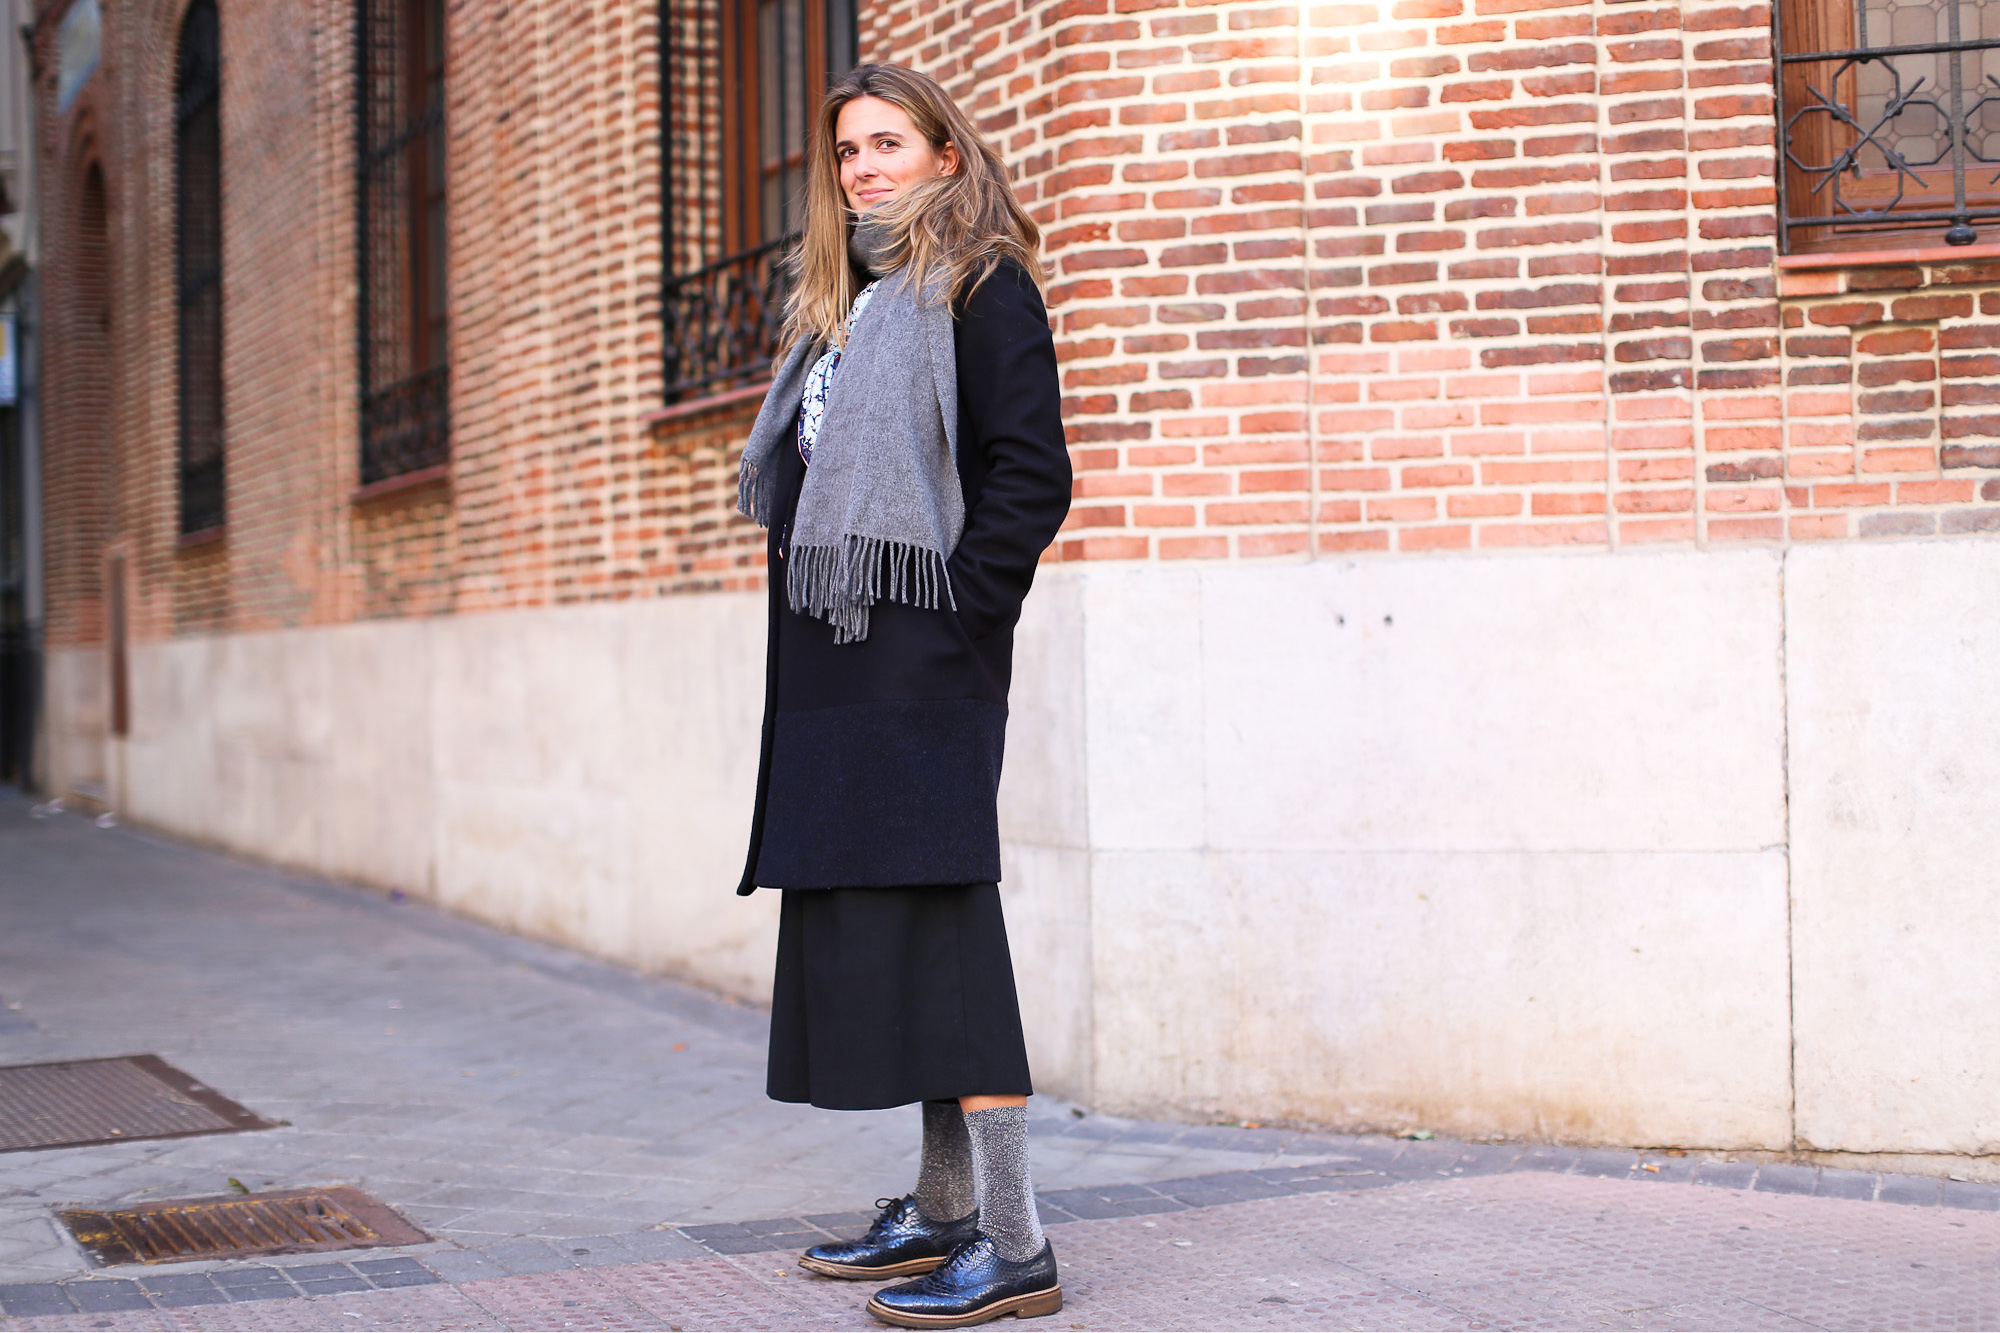 Clochet_streetstyle_fashionblogger_YouMustCreateculottetrousers_andotherstoriespinkknit_coswoolcoat